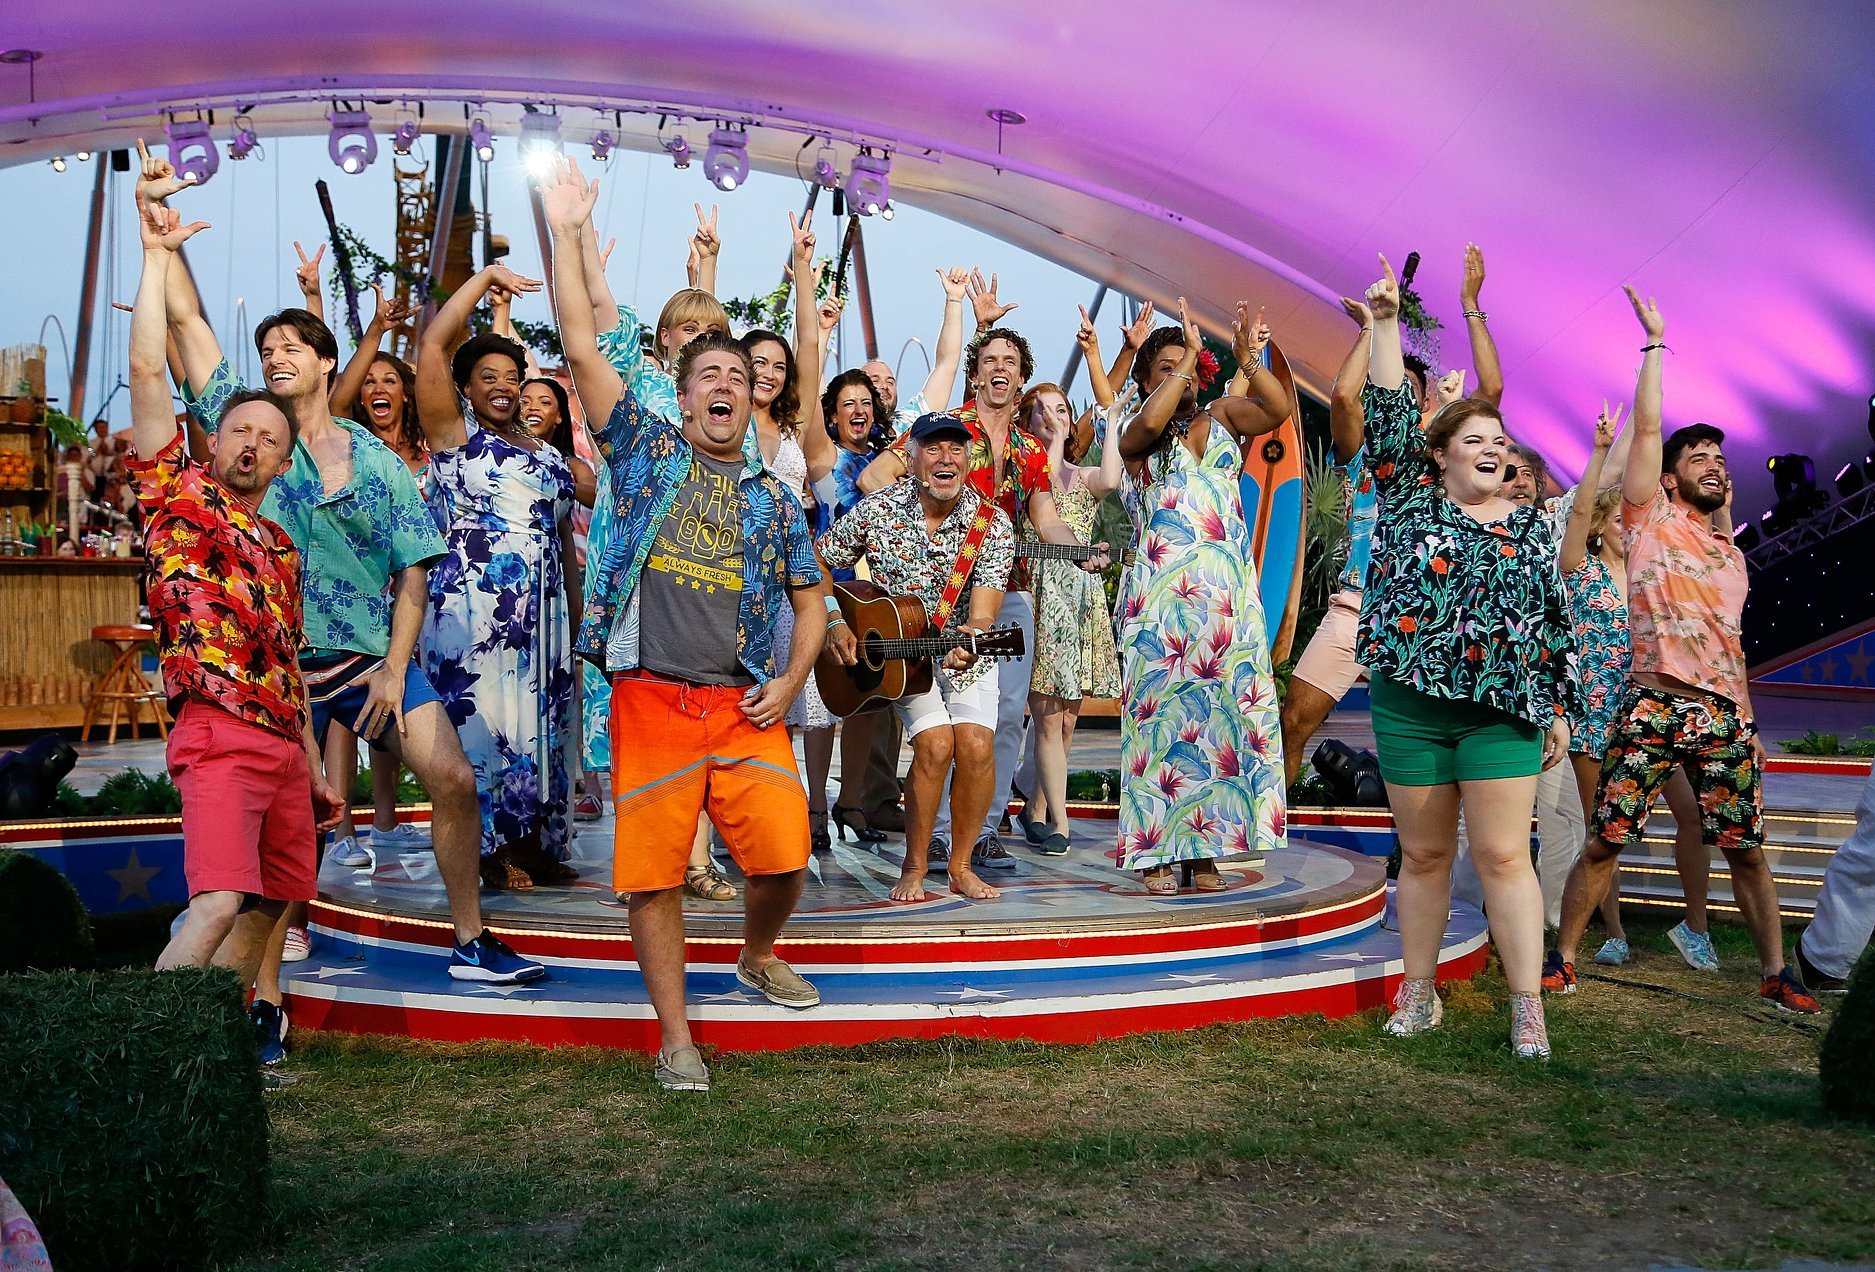 Jimmy Buffett and the cast of Escape to Margaritaville perform together at the 2019 <em>A Capitol Fourth</em>.